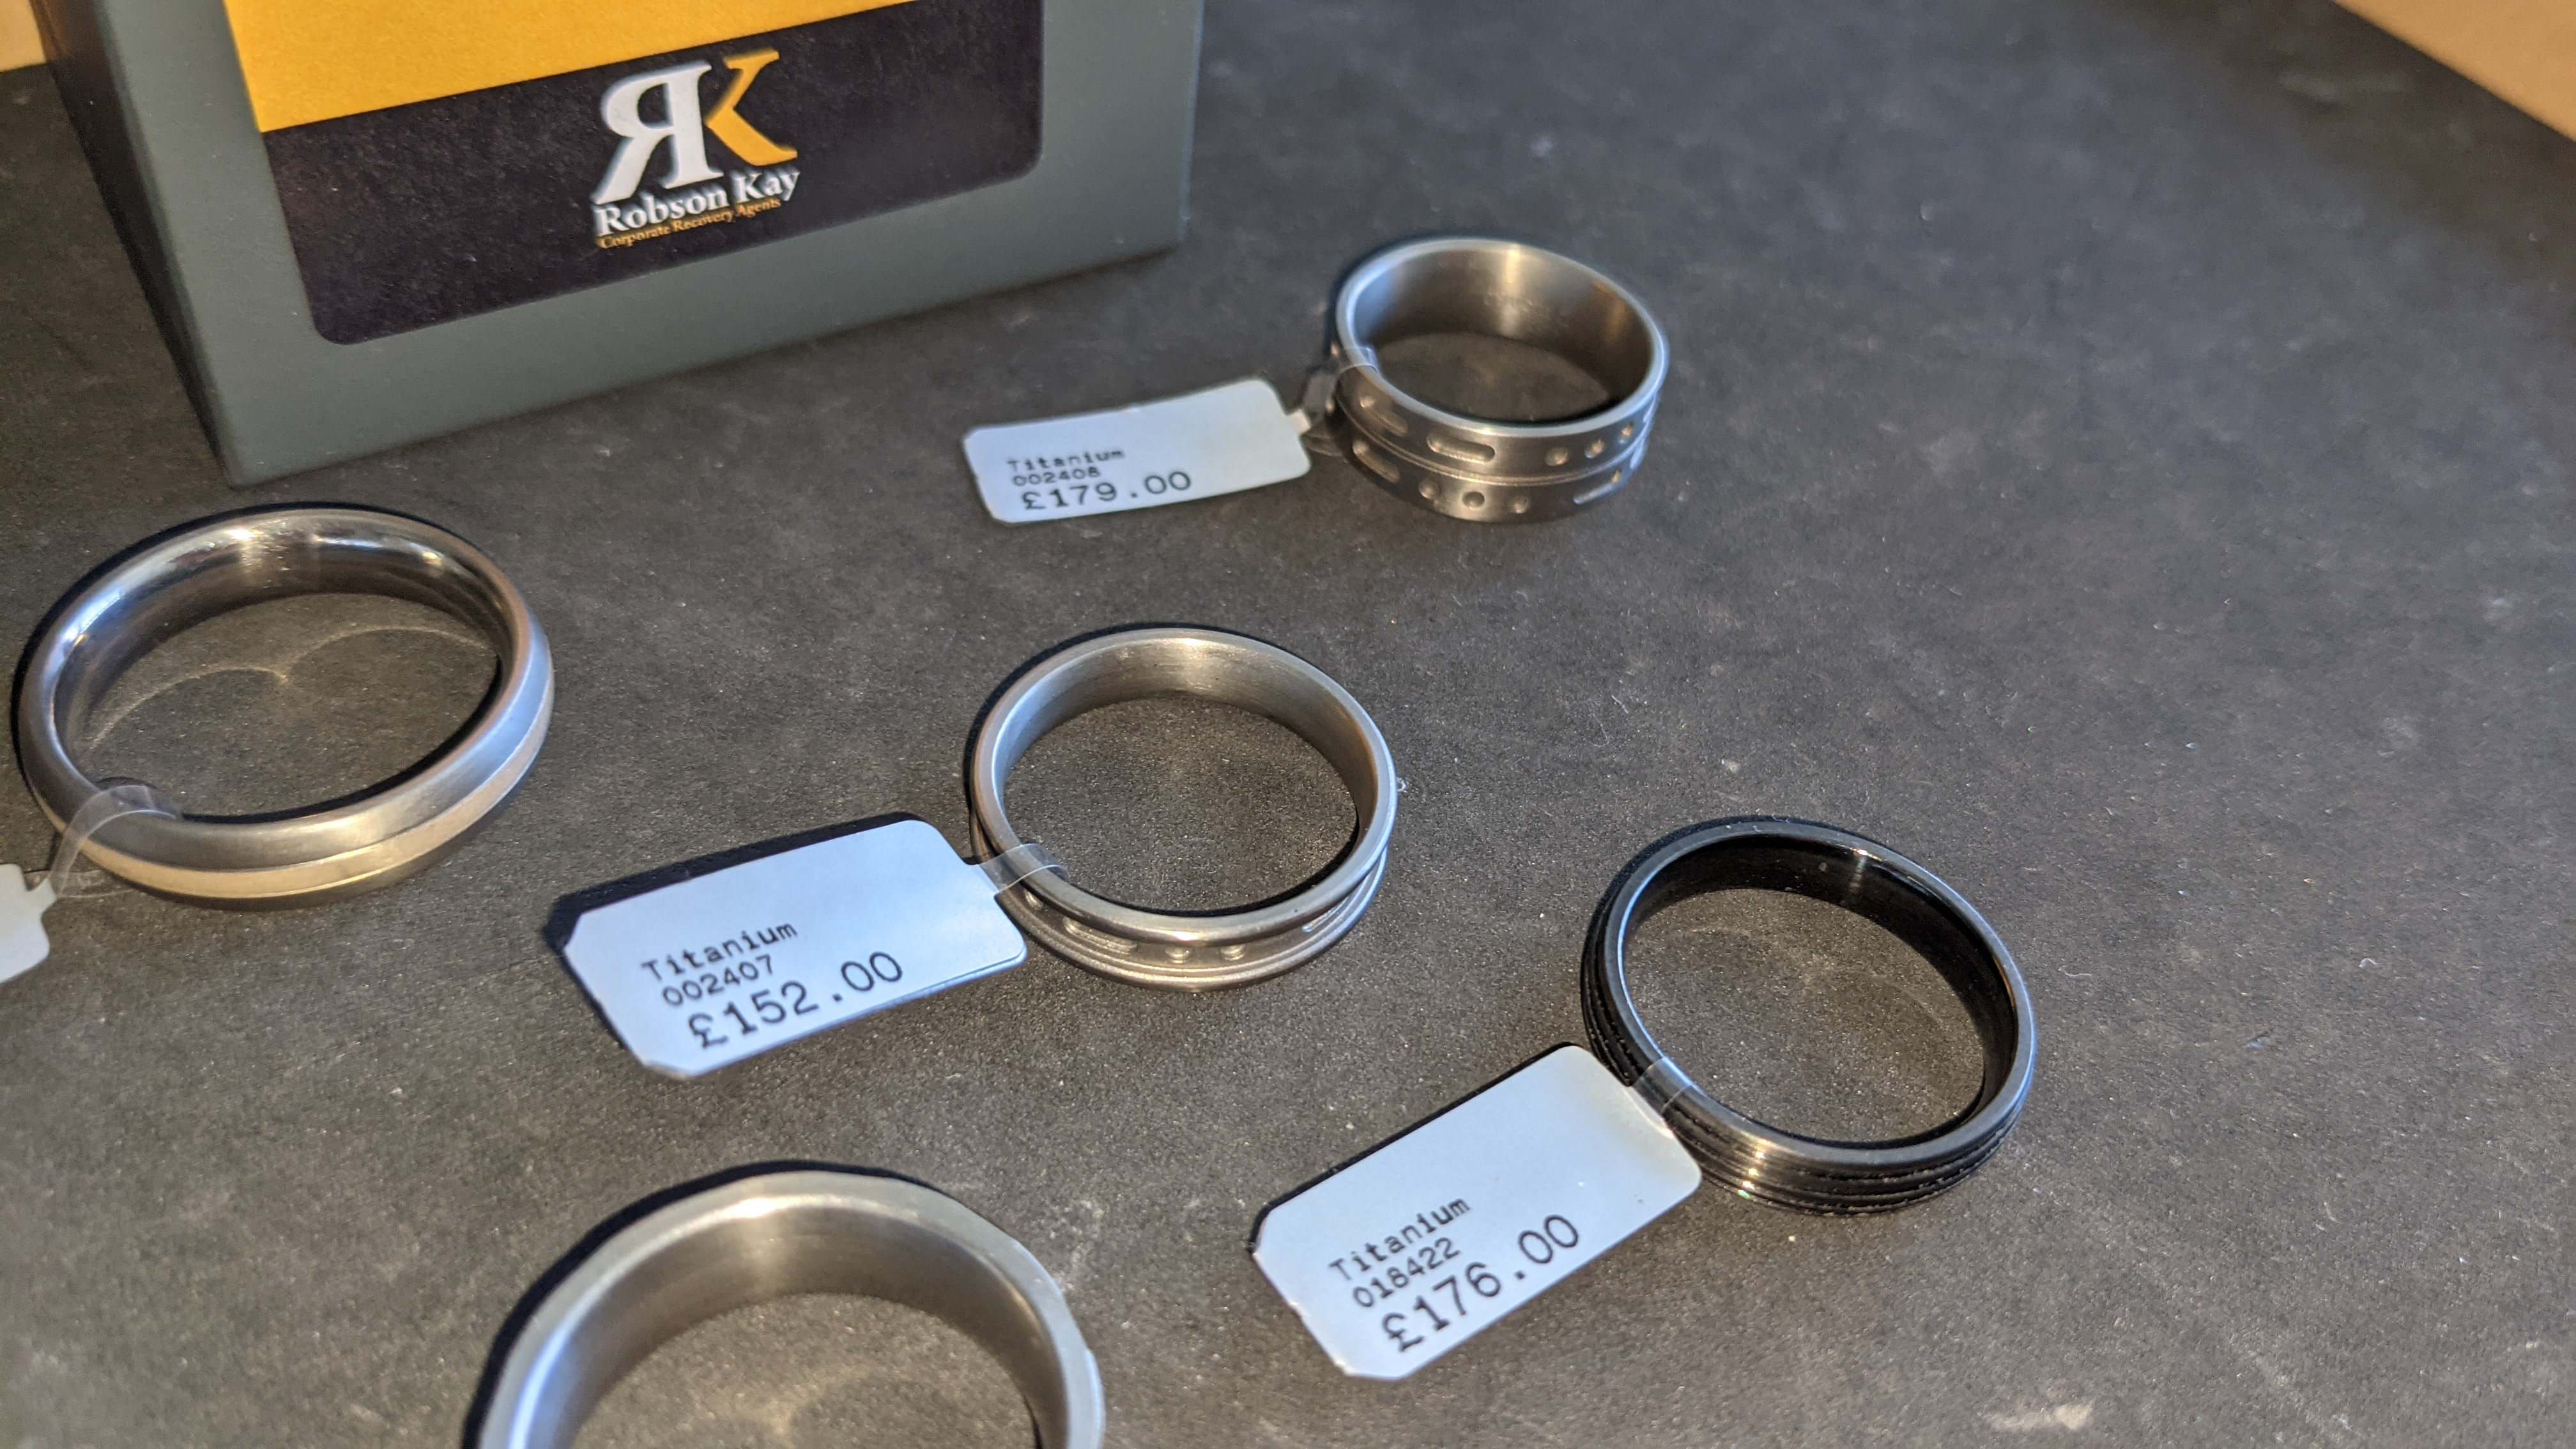 5 off assorted titanium rings with RRP from £109 - £179 per ring. Total RRP is £785 - Image 11 of 13